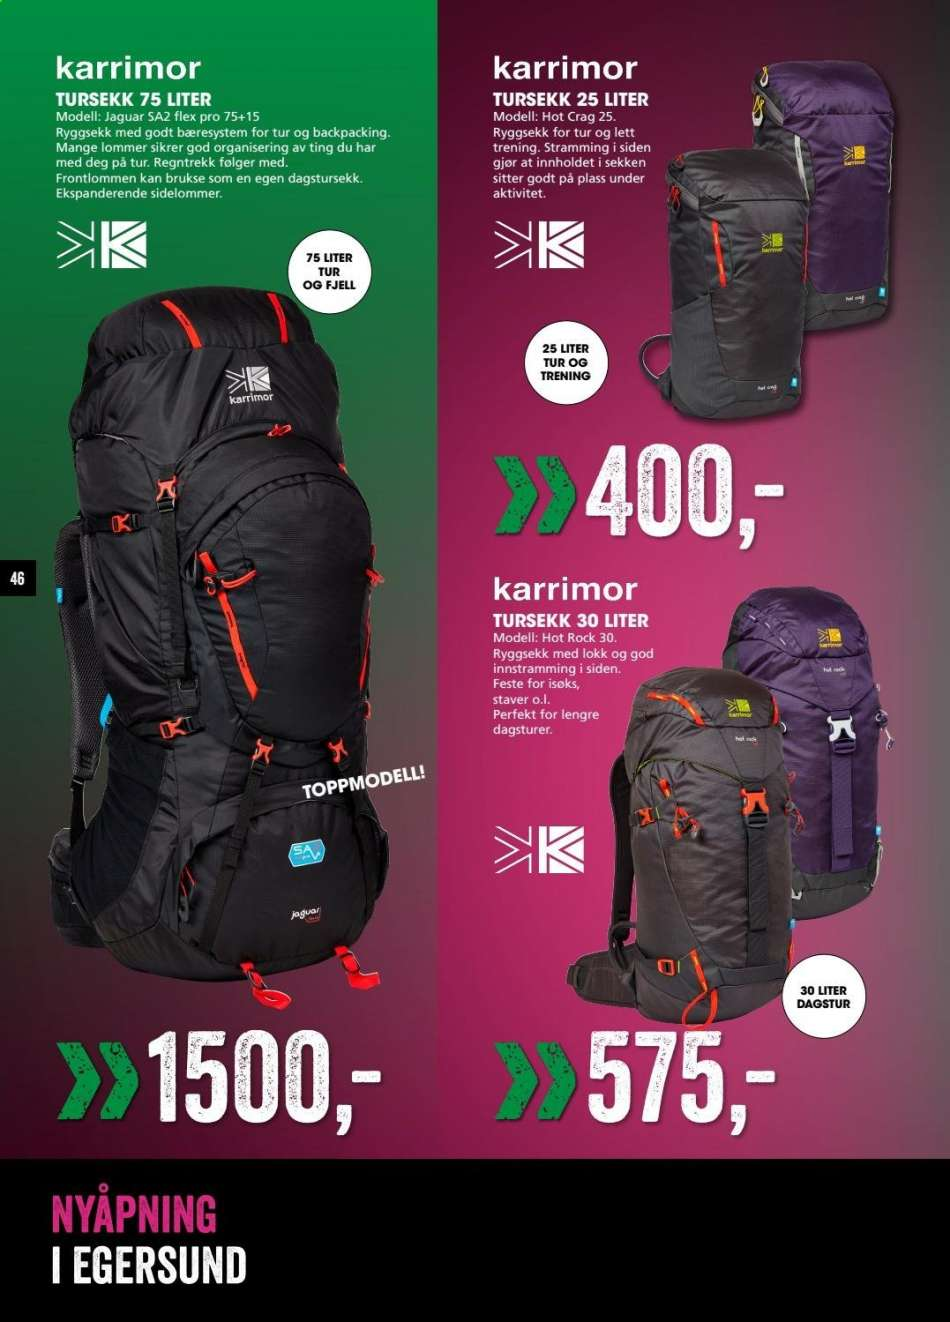 d6e221b0 Sport Outlet kundeavis 06.05.2019 - 09.05.2019 | Alletilbudsaviser.co.no